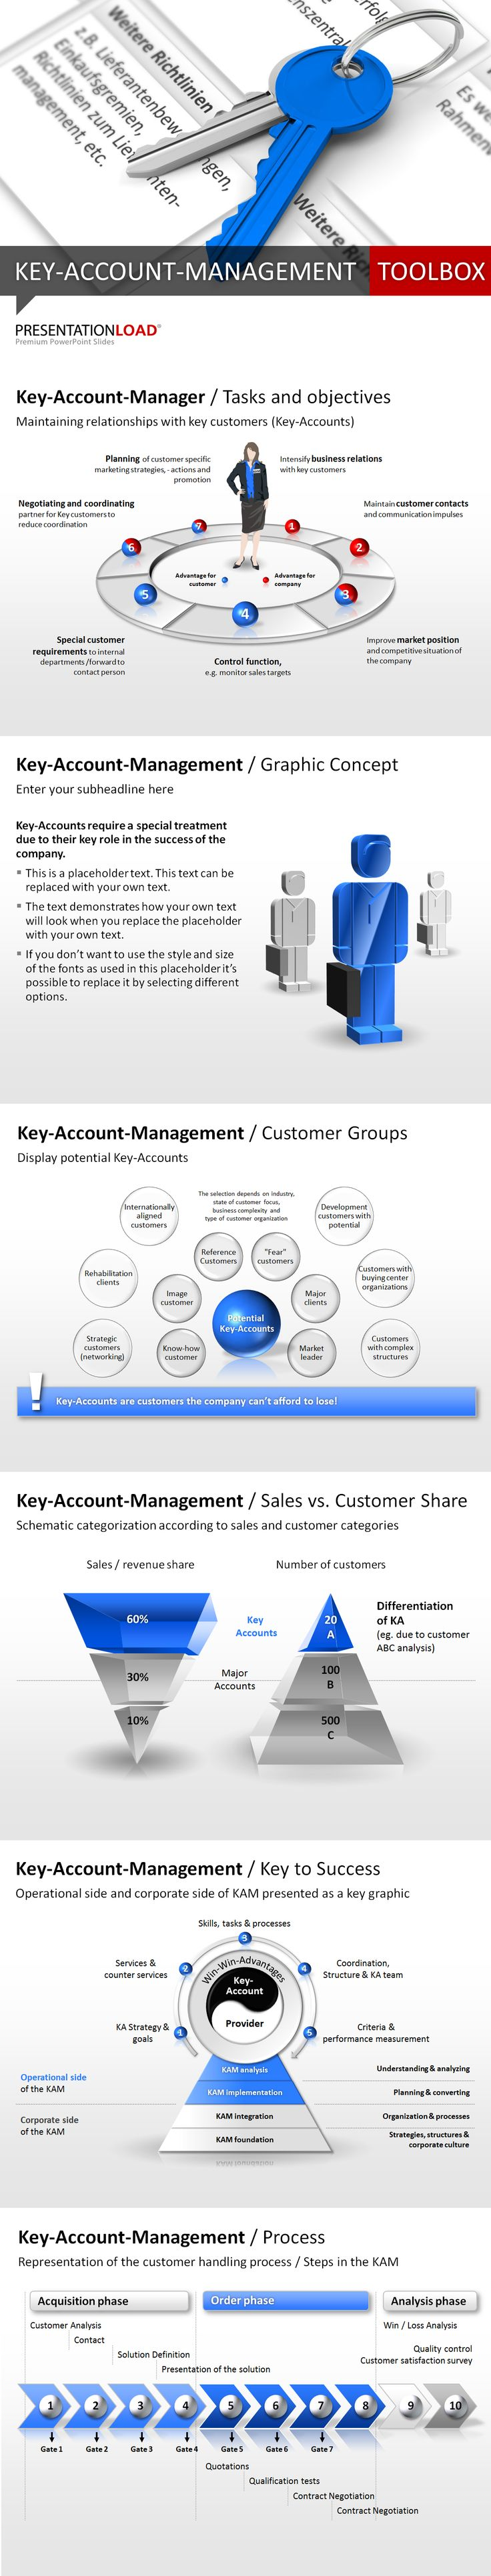 Key Account Management Template Toolbox with 100 professional PowerPoint slides for a perfect business presentation.